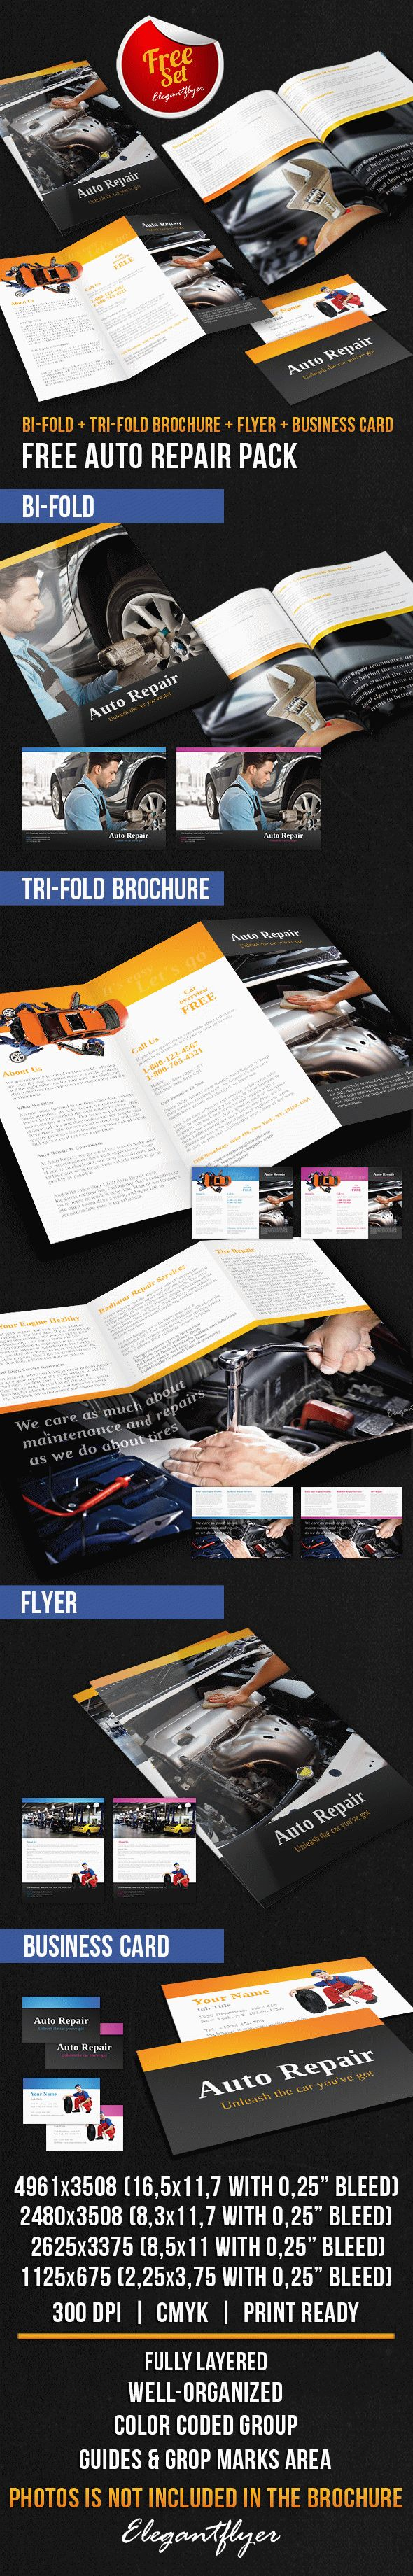 Auto Repair Brochure Pack – Free PSD Template